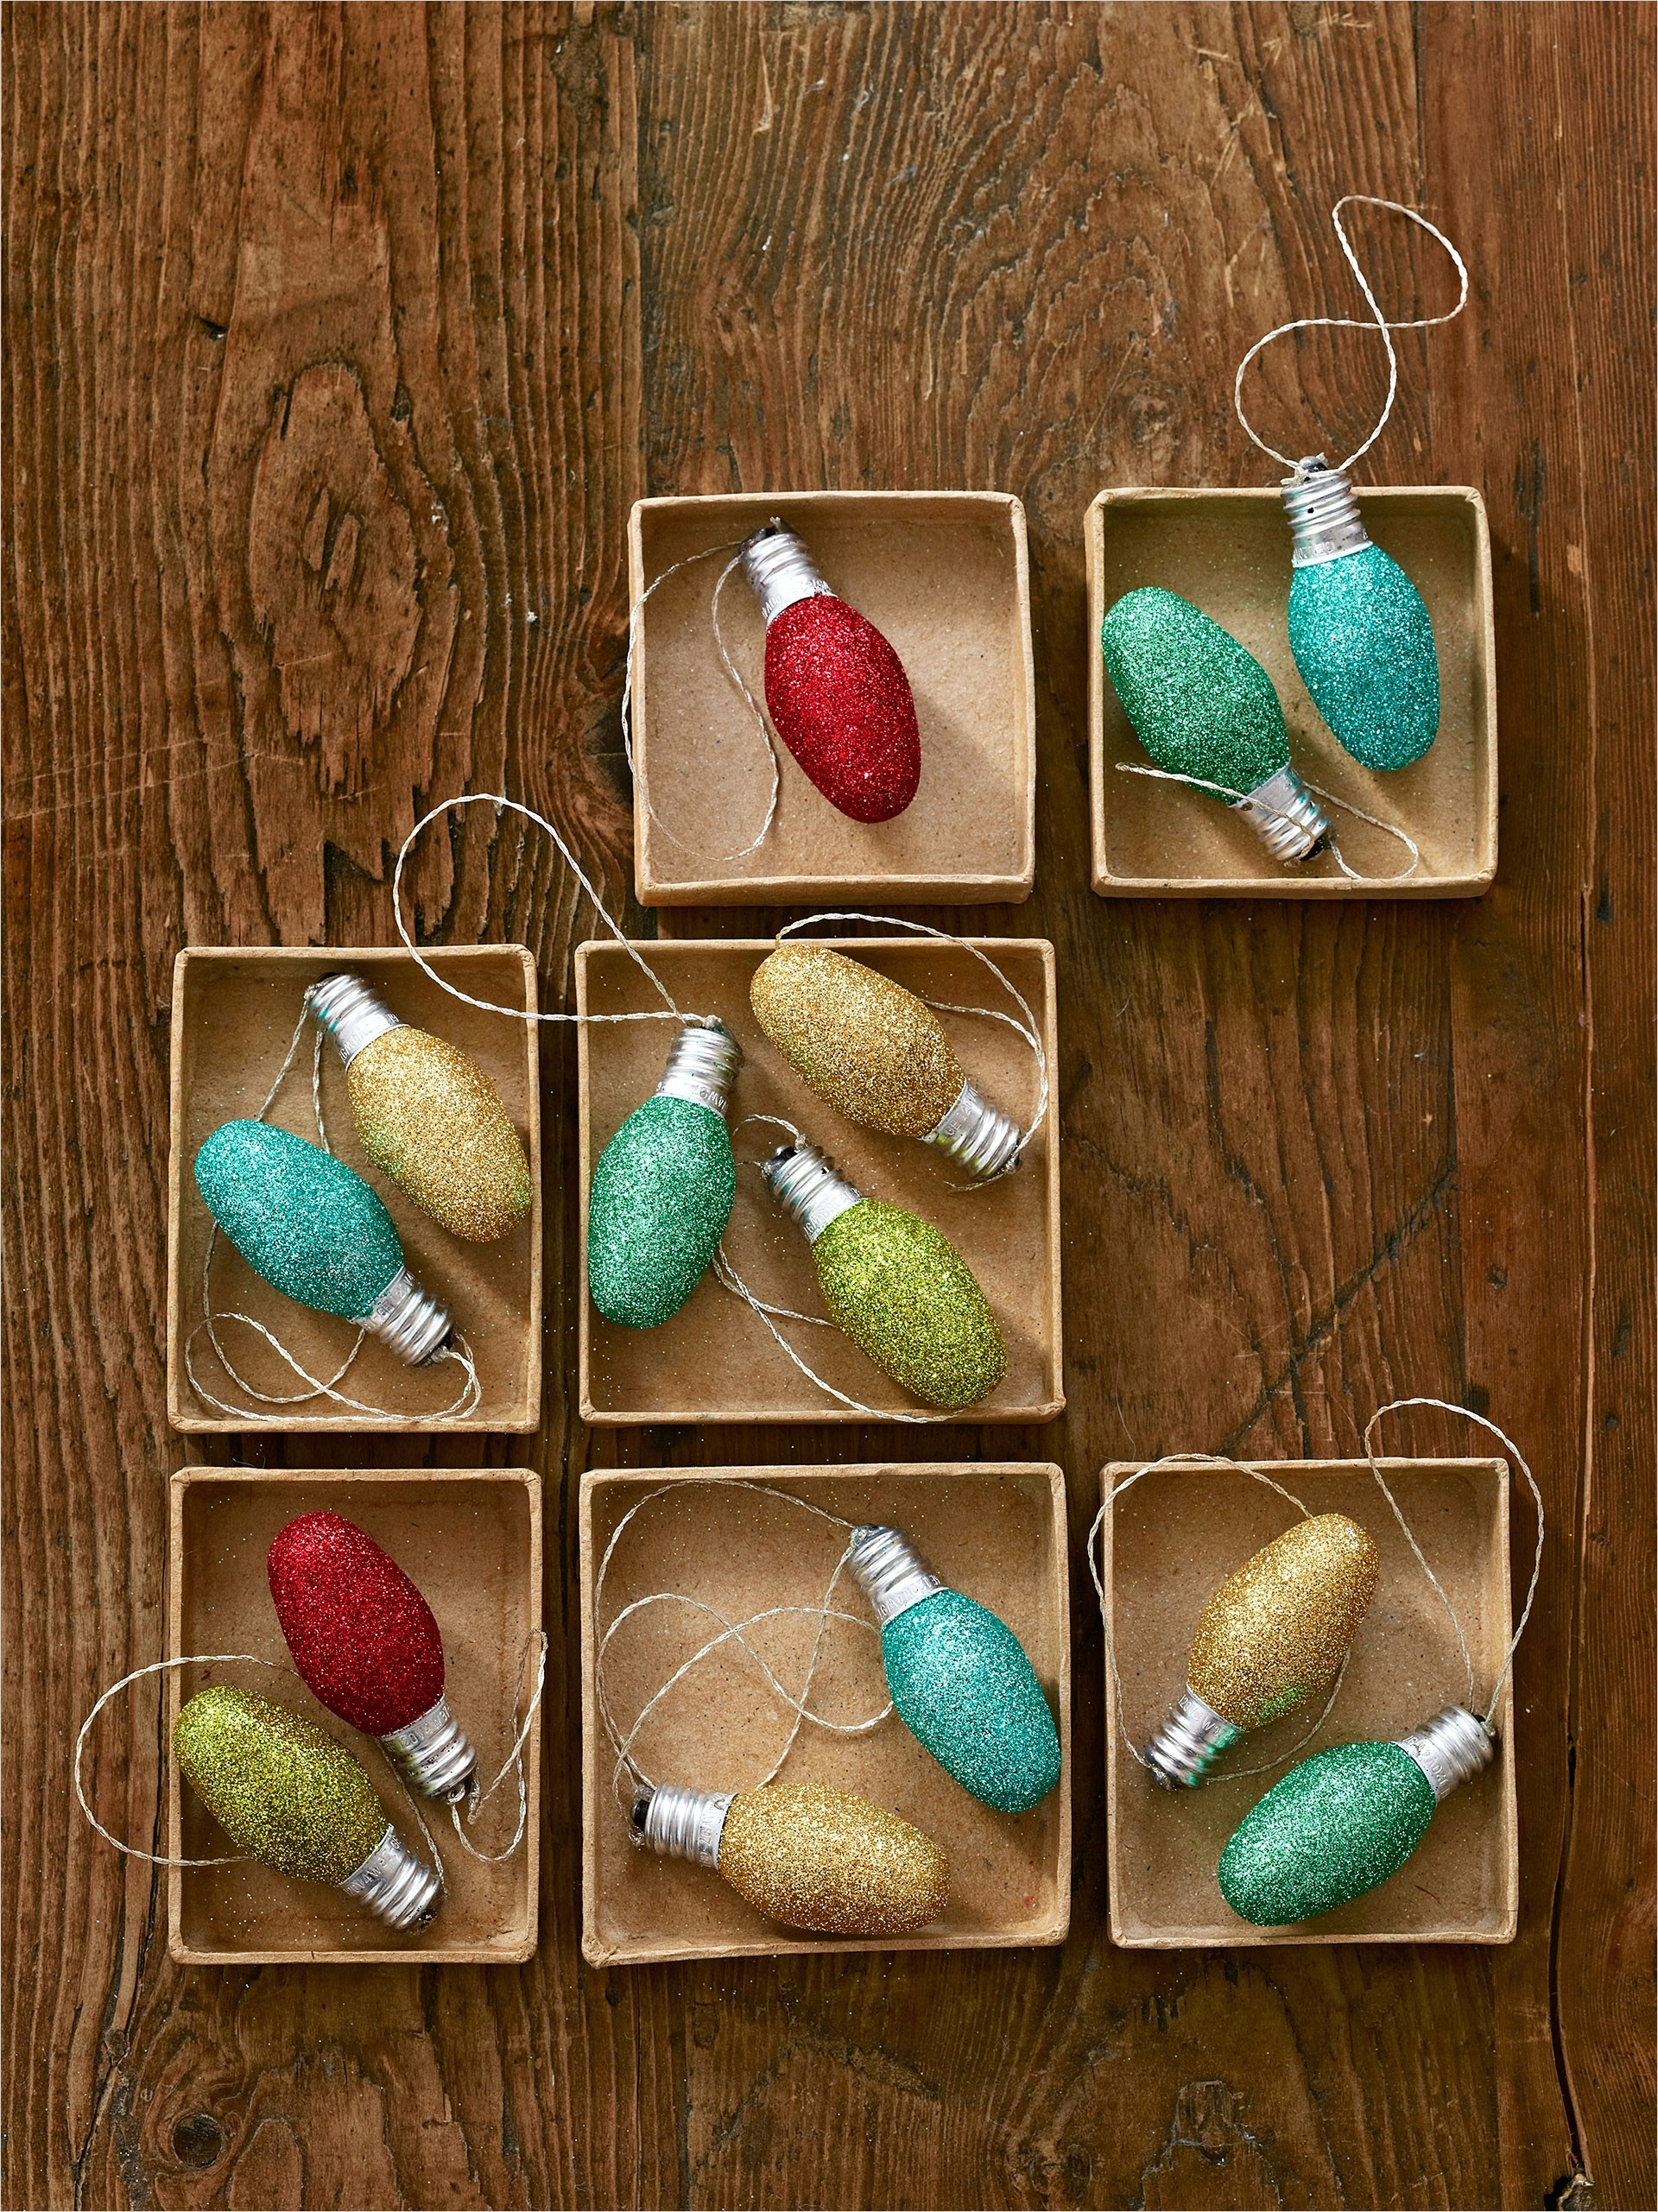 40 Diy Easy Christmas ornament Crafts Ideas 61 Crafts for Christmas ornaments 8